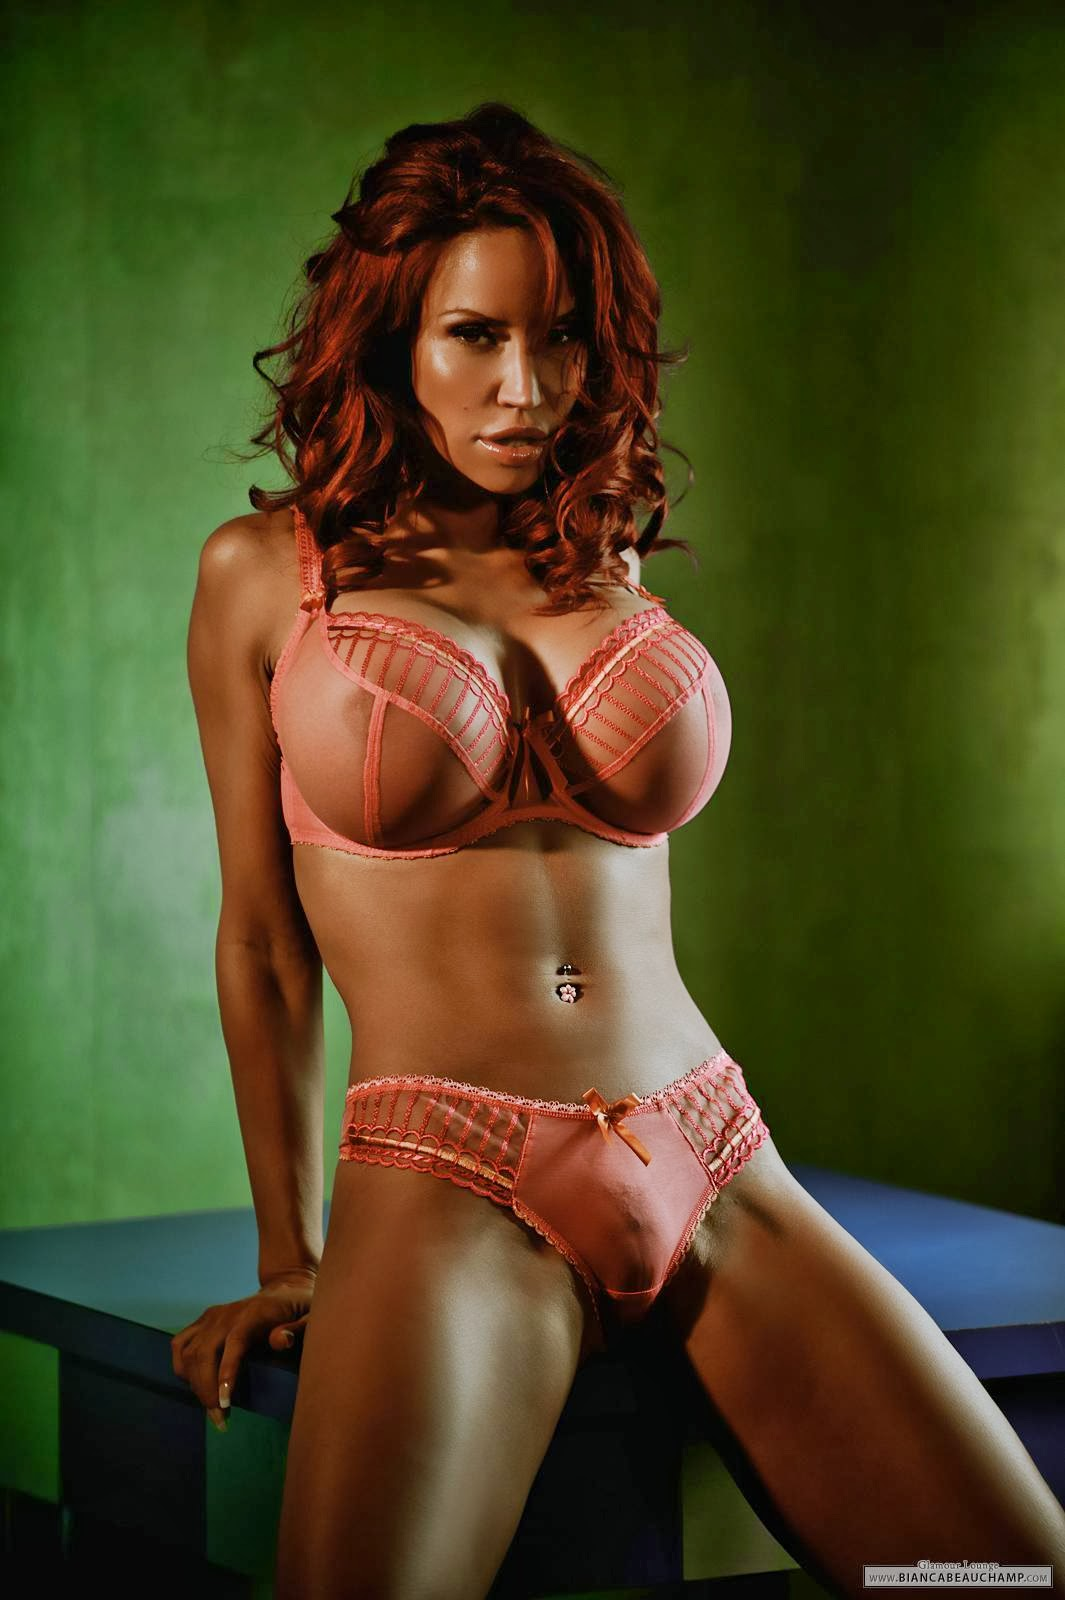 bianca beauchamp nude pictures. rating = 9.12/10